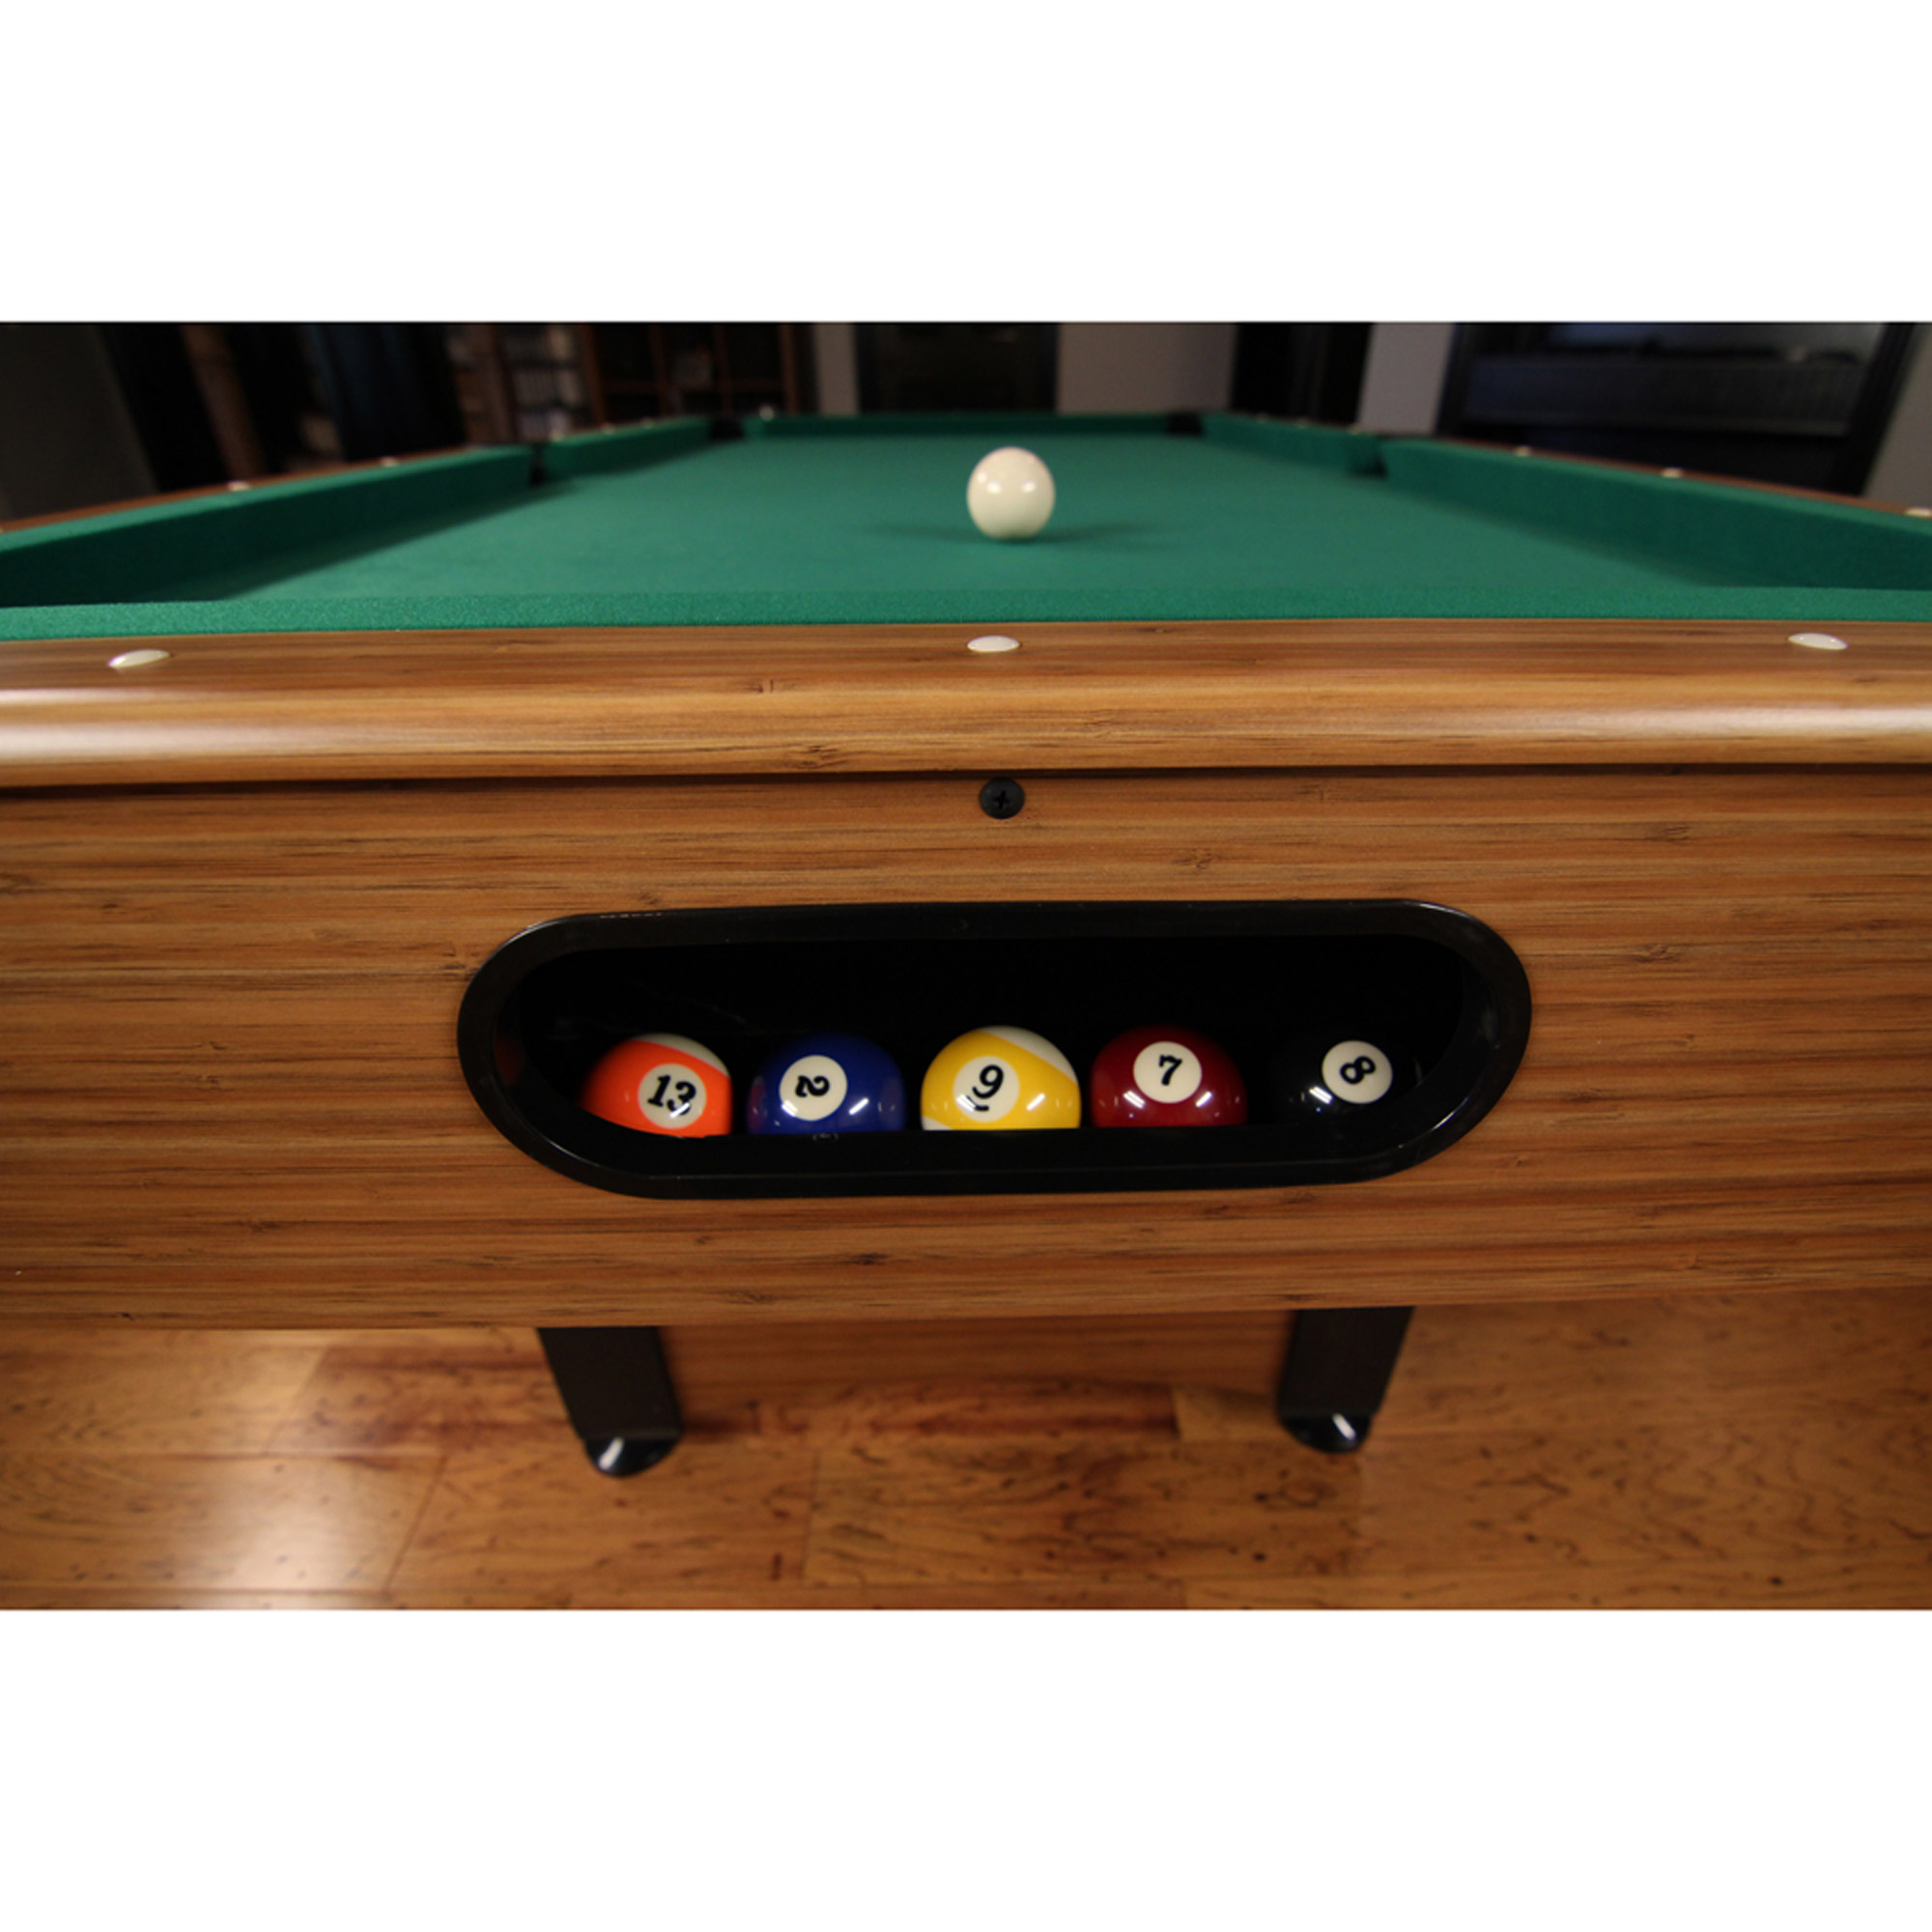 Feet Billiard Pool Table With Cues Set Of Balls Triangle - Mizerak outdoor pool table